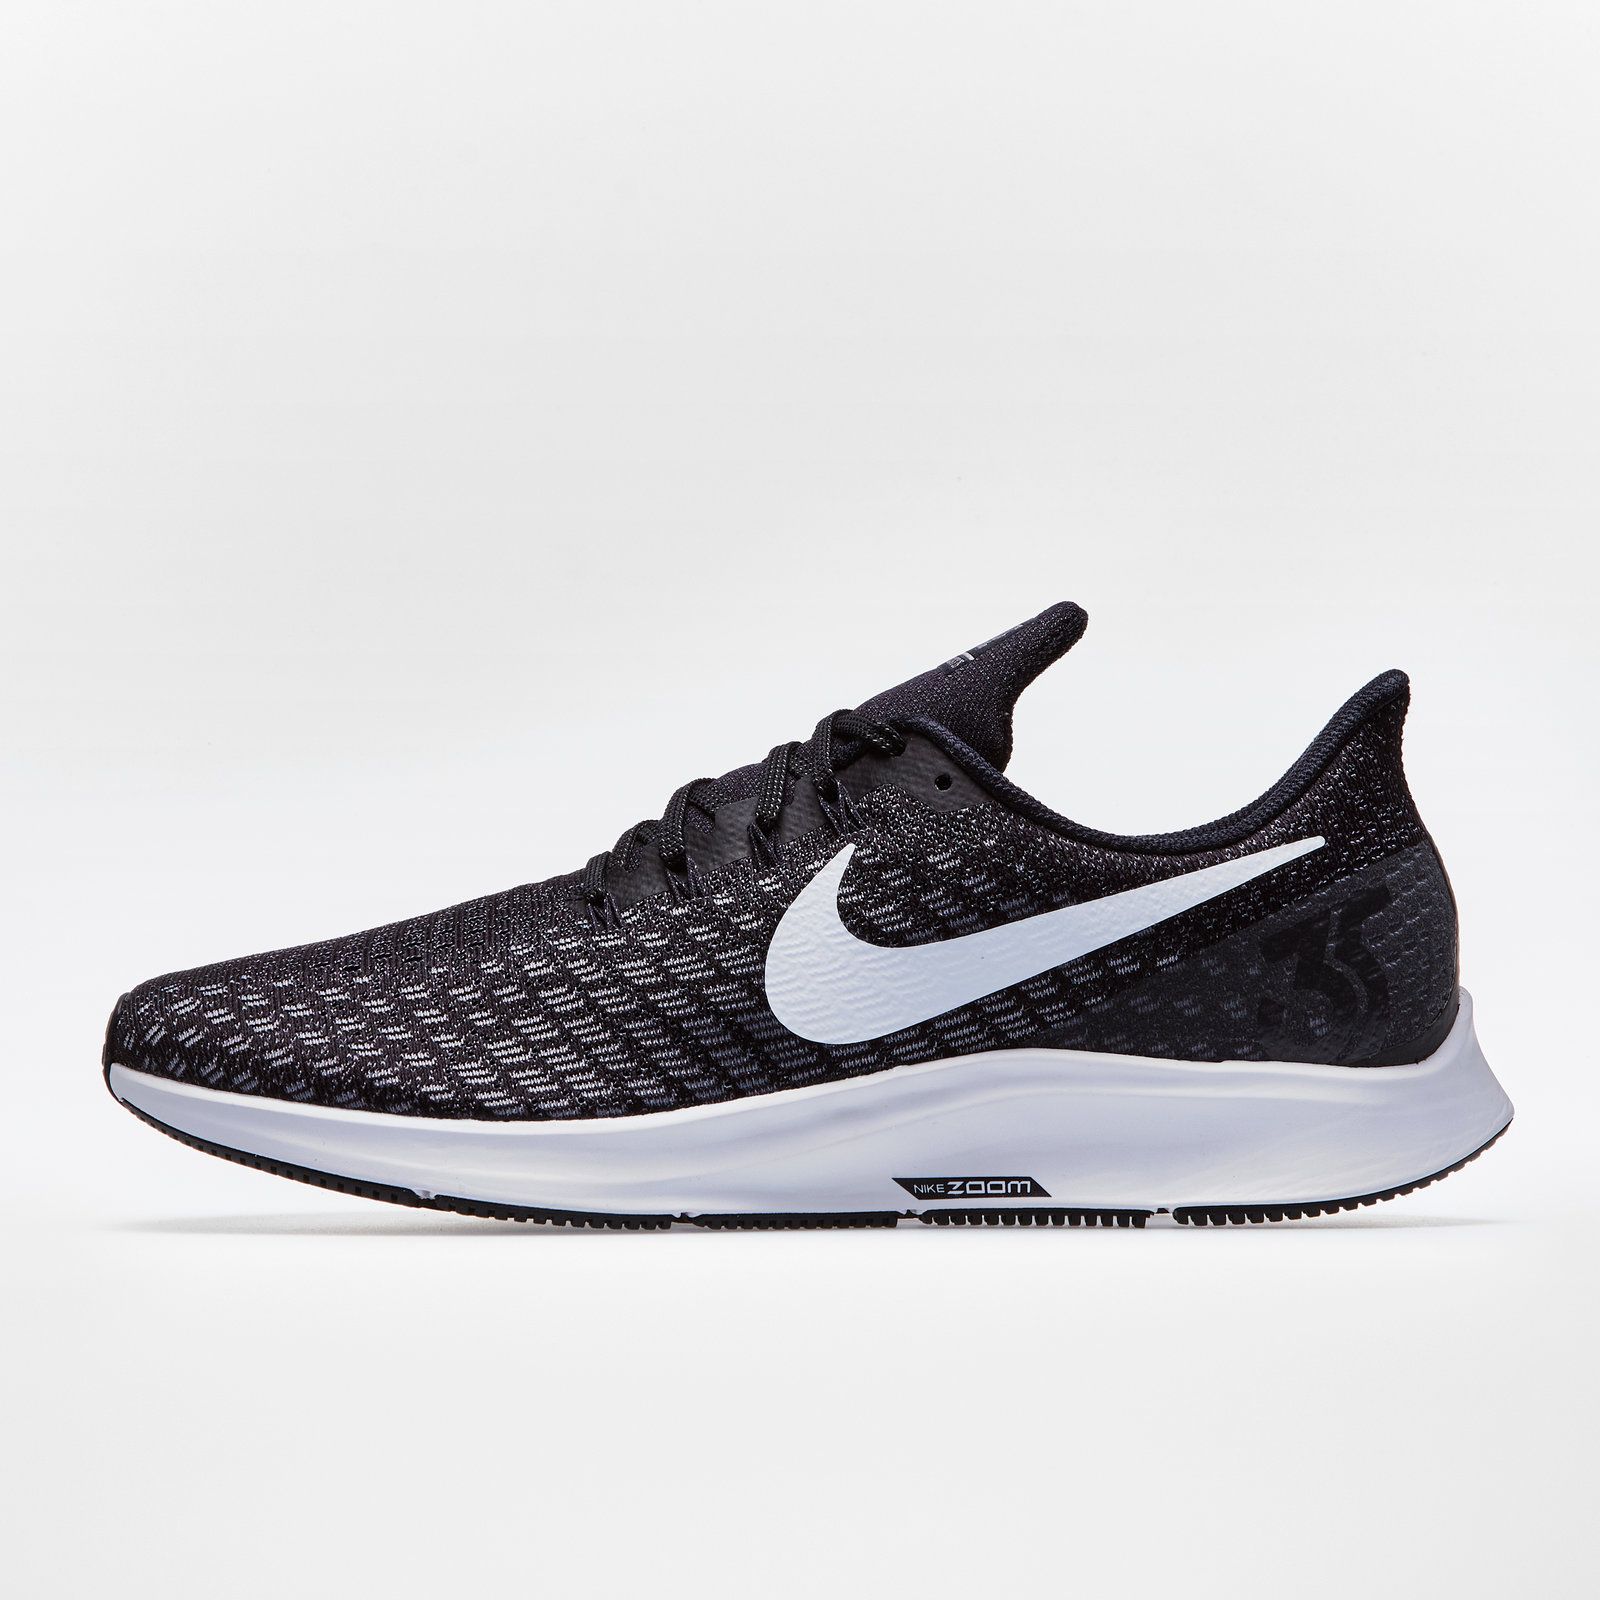 Image of Air Zoom Pegasus 35 Running Shoes